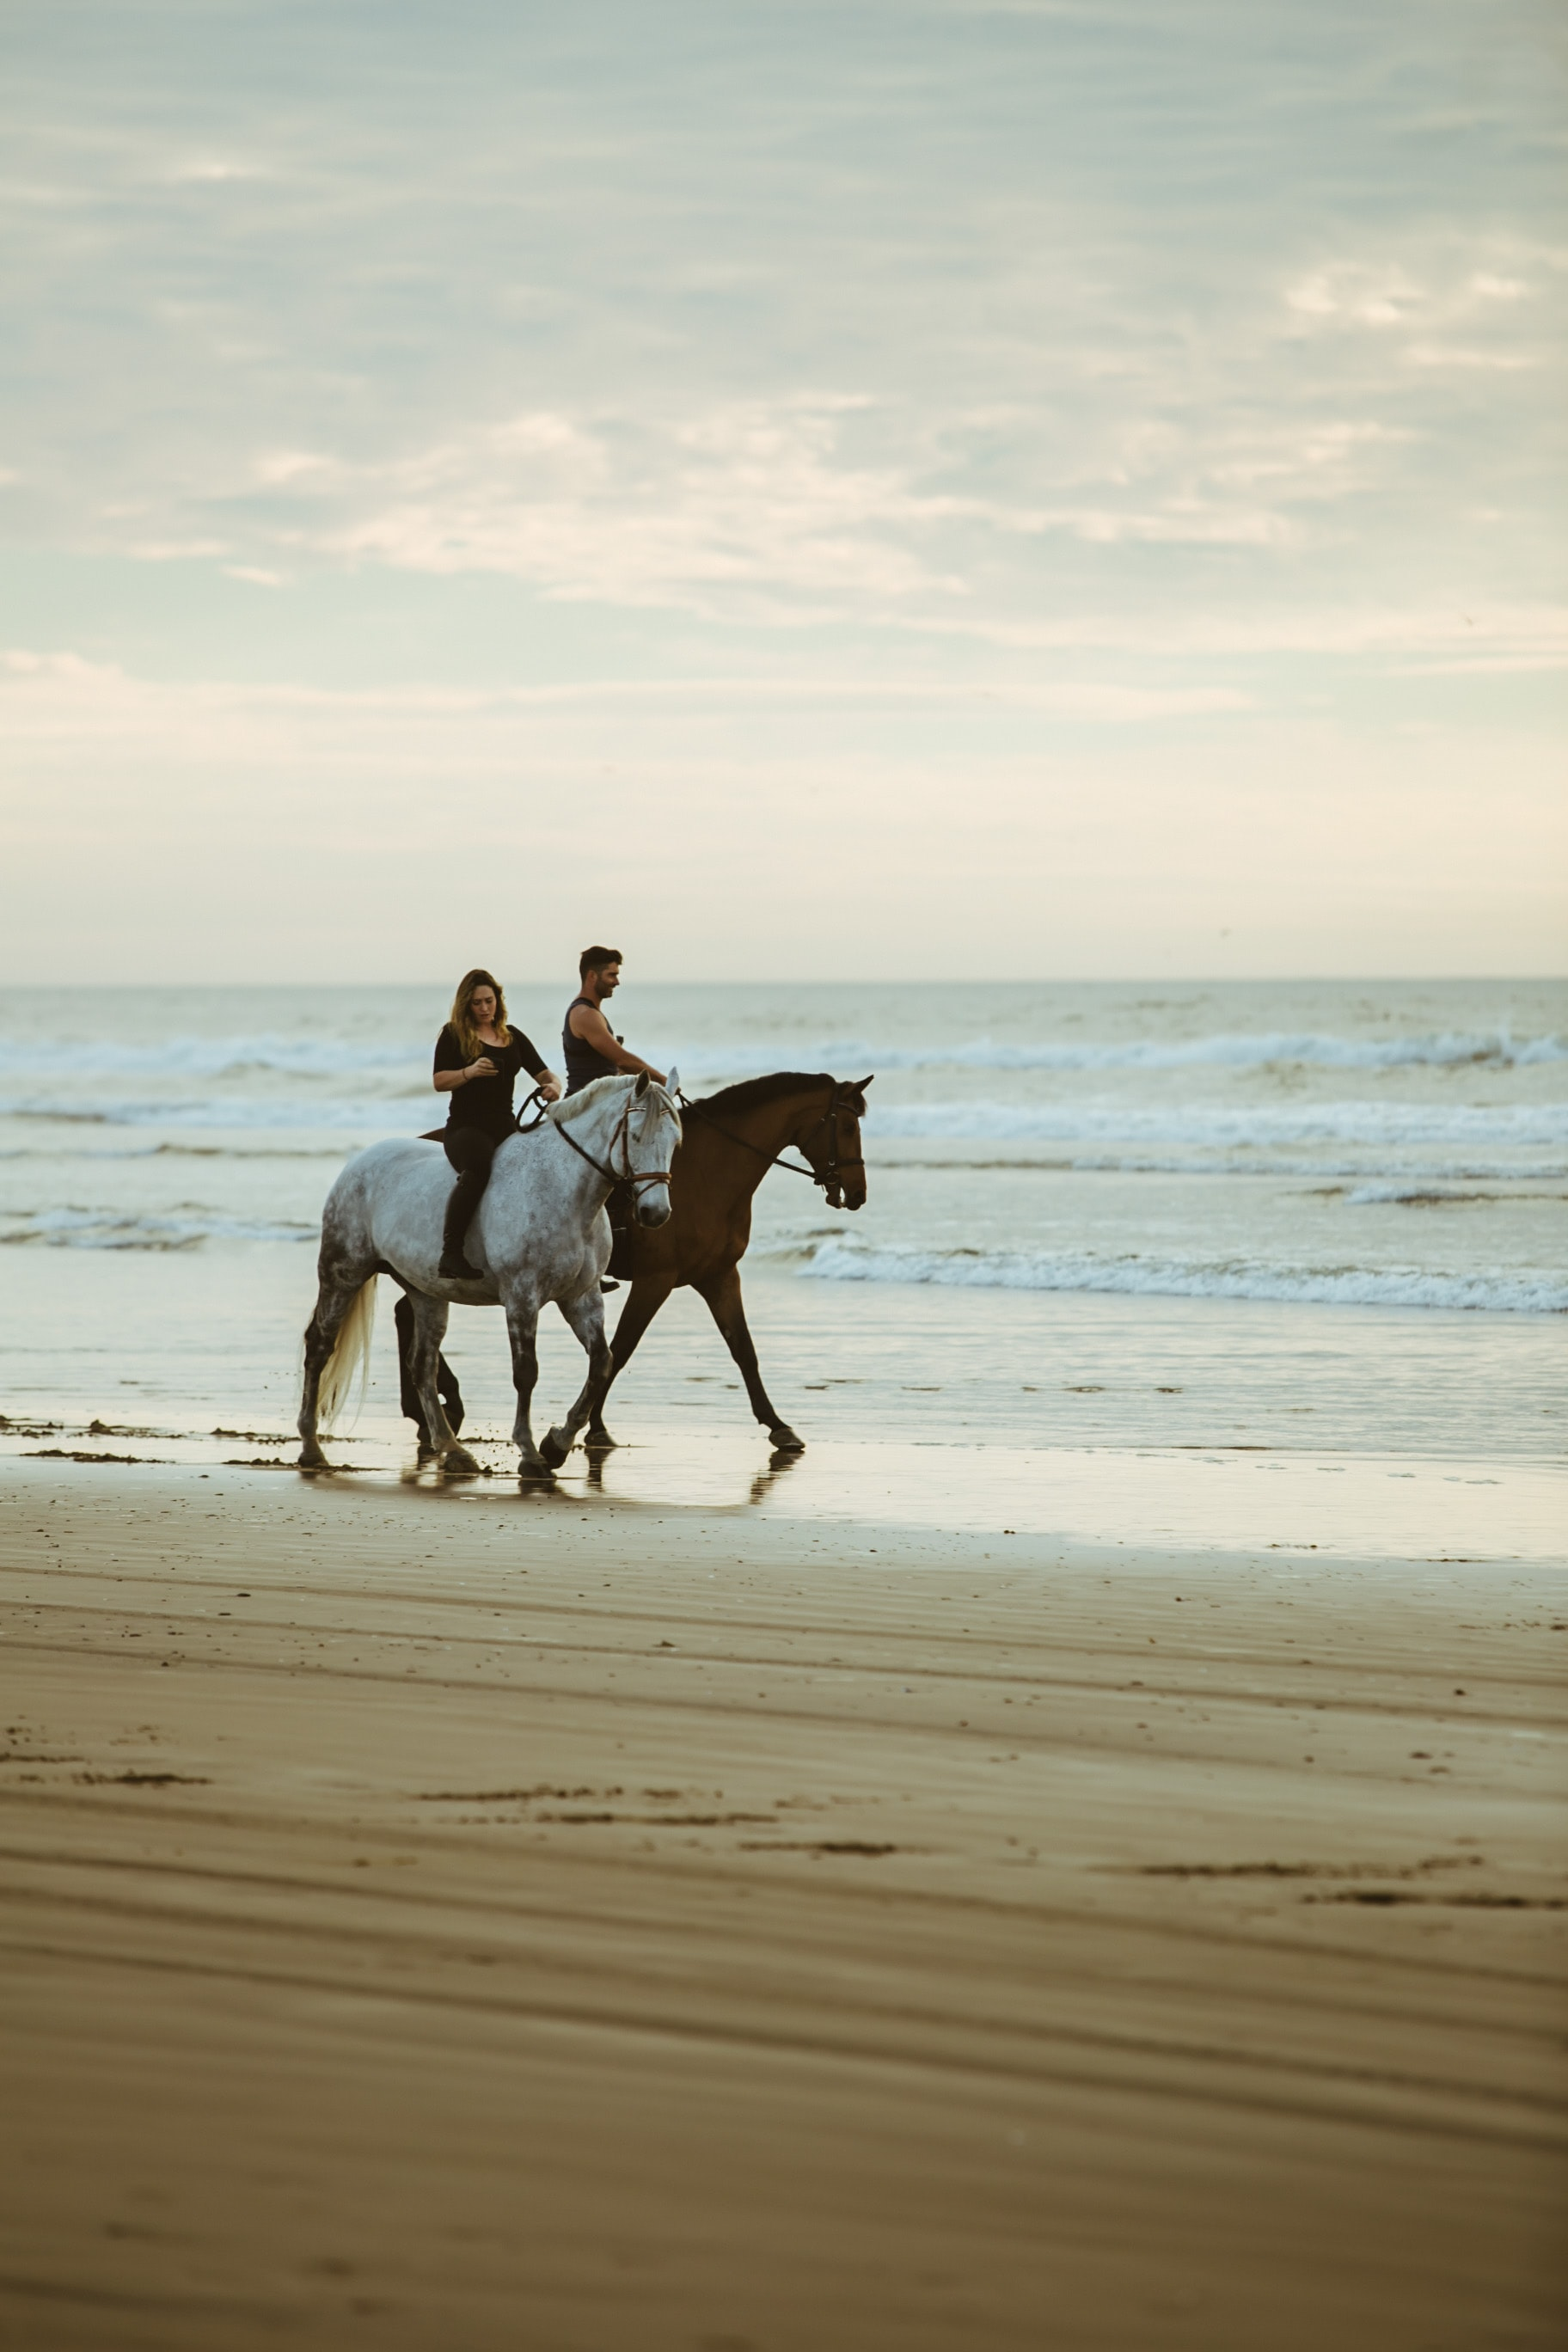 Silhouette Of Woman Kneeling On Horse Beside Body Of Water During Sunset Photo Free Horse Image On Unsplash